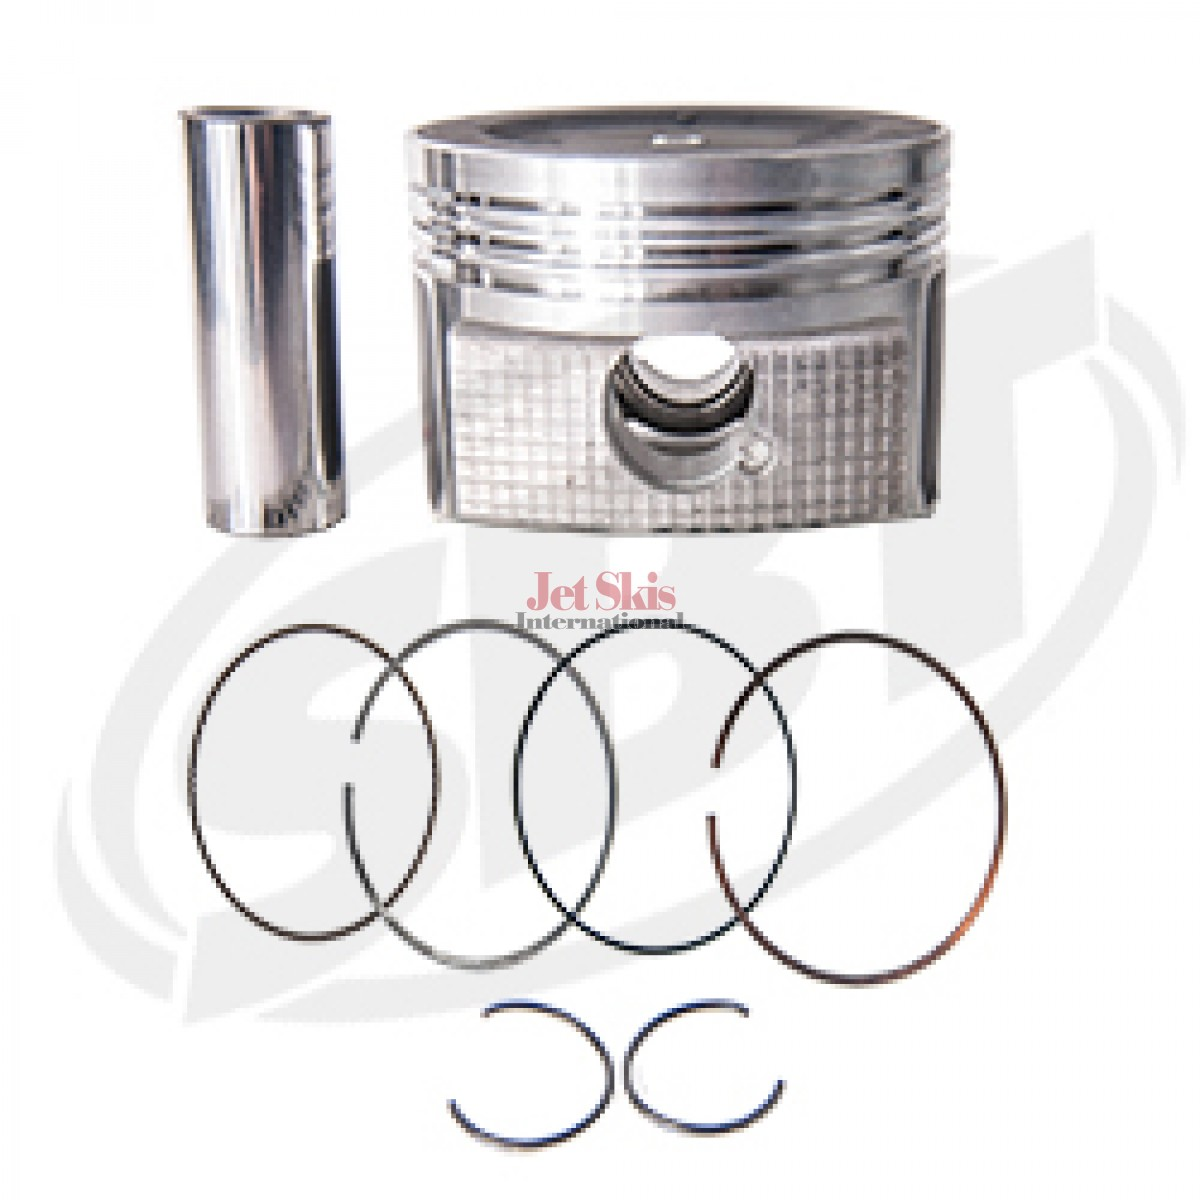 Yamaha OEM# 6BH-11631-00-B0 Replacement Piston & Ring Set 1.8L N /A FX Cruiser HO /FX HO /VXR